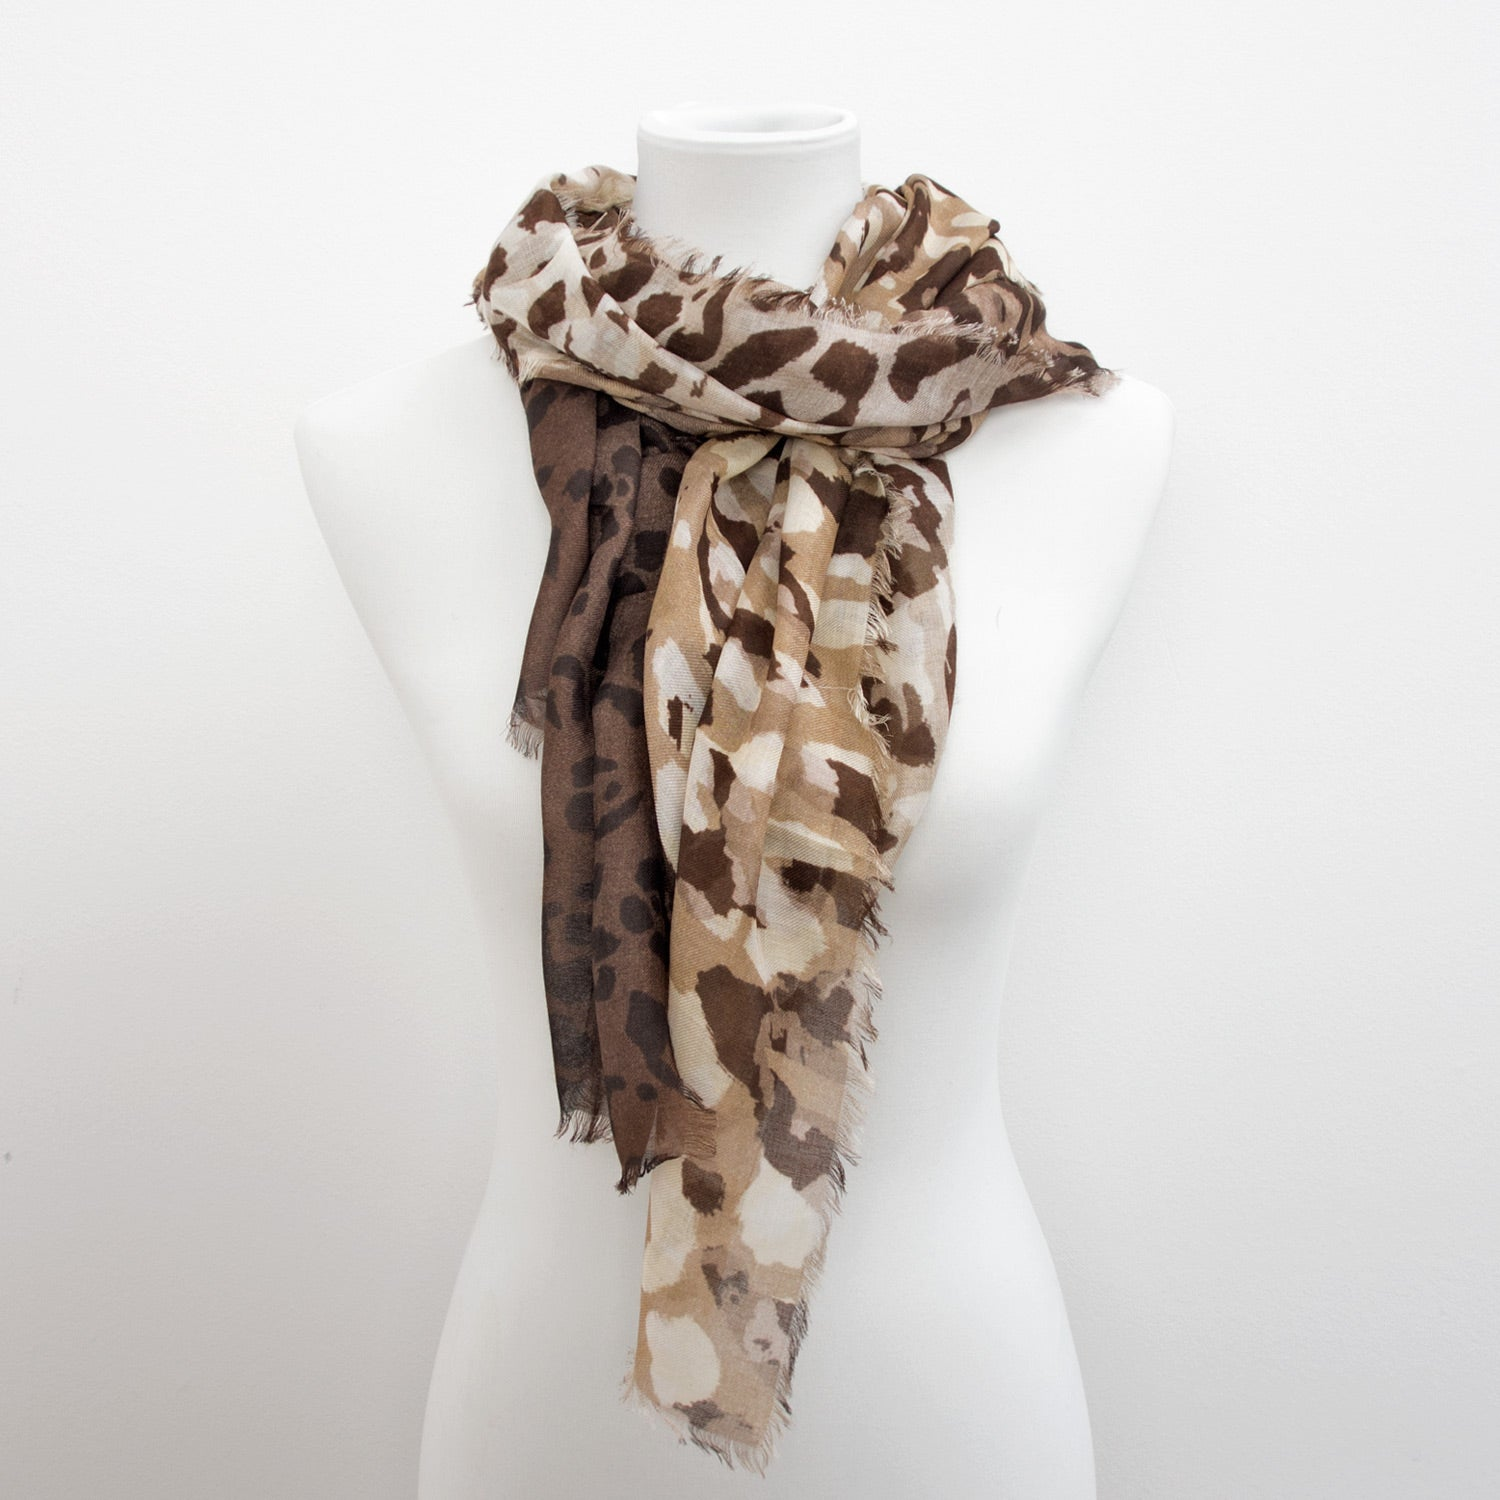 Doria & Dojola Camouflage Cashmere-Modal Scarf. 85% Modal 15% Cashmere  67 x 176 cm. 100% Made in Italy. Pictured in Beige.